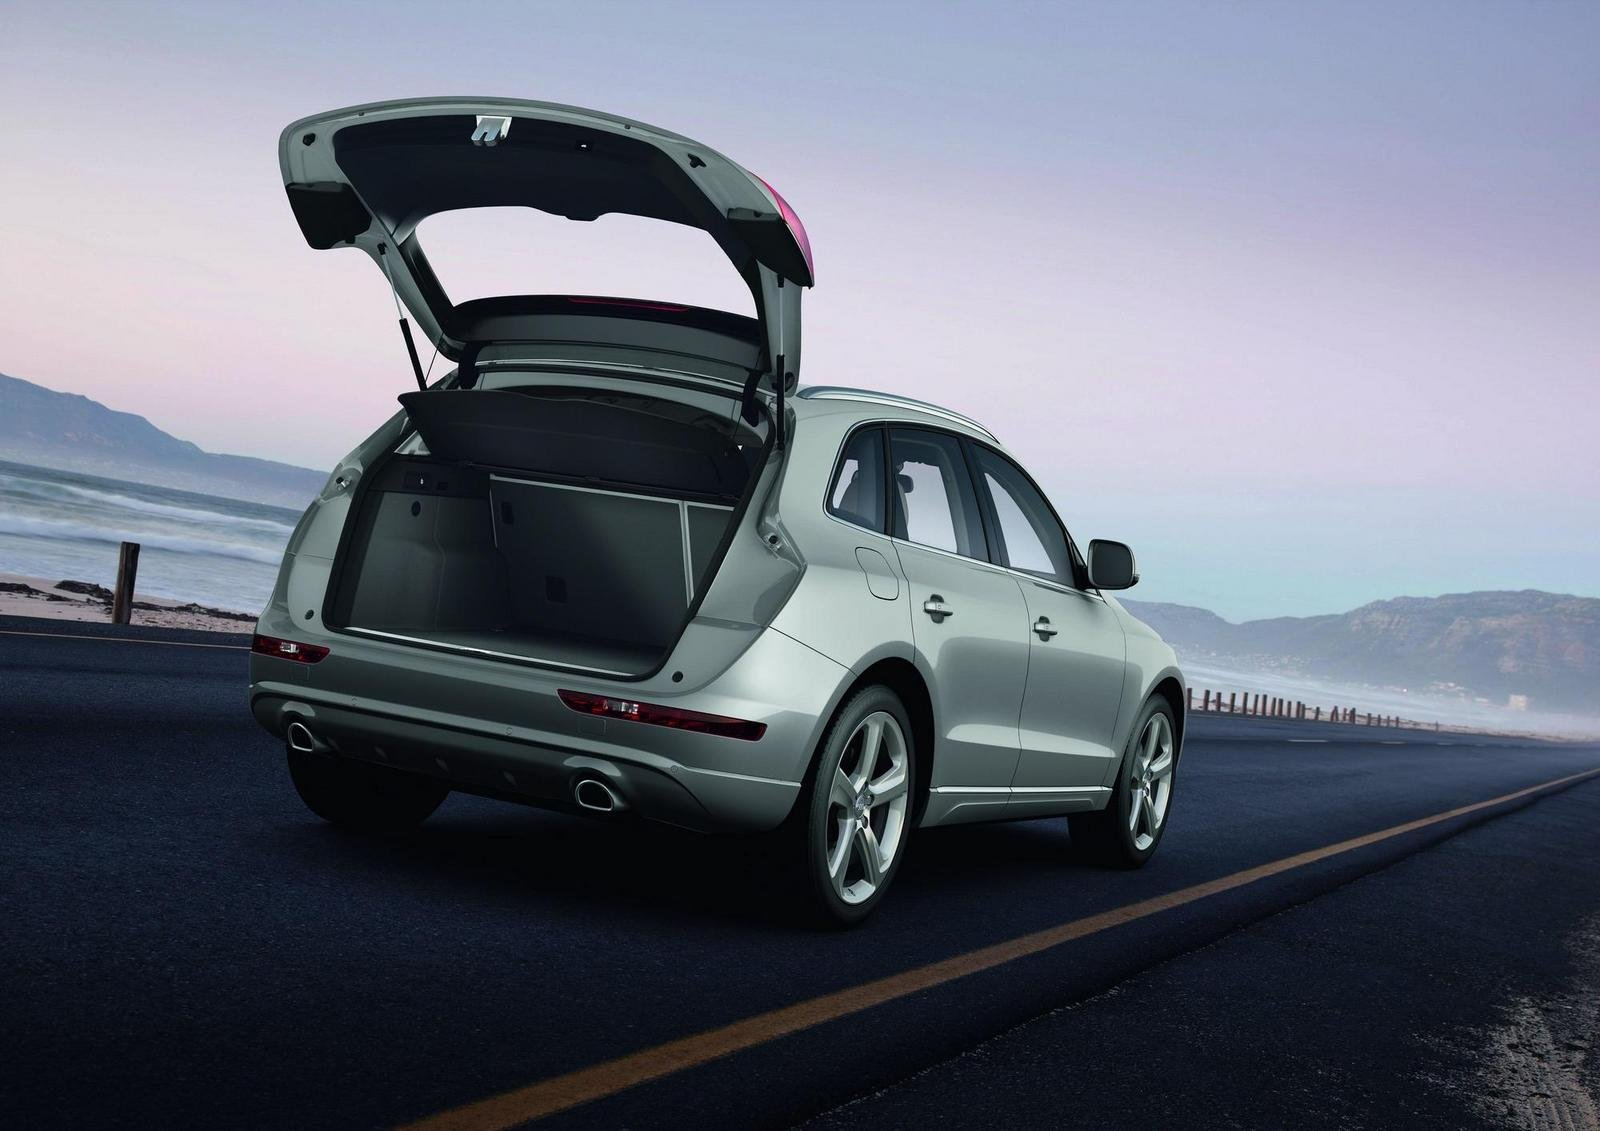 2013 audi q5 picture 451551 car review top speed. Black Bedroom Furniture Sets. Home Design Ideas